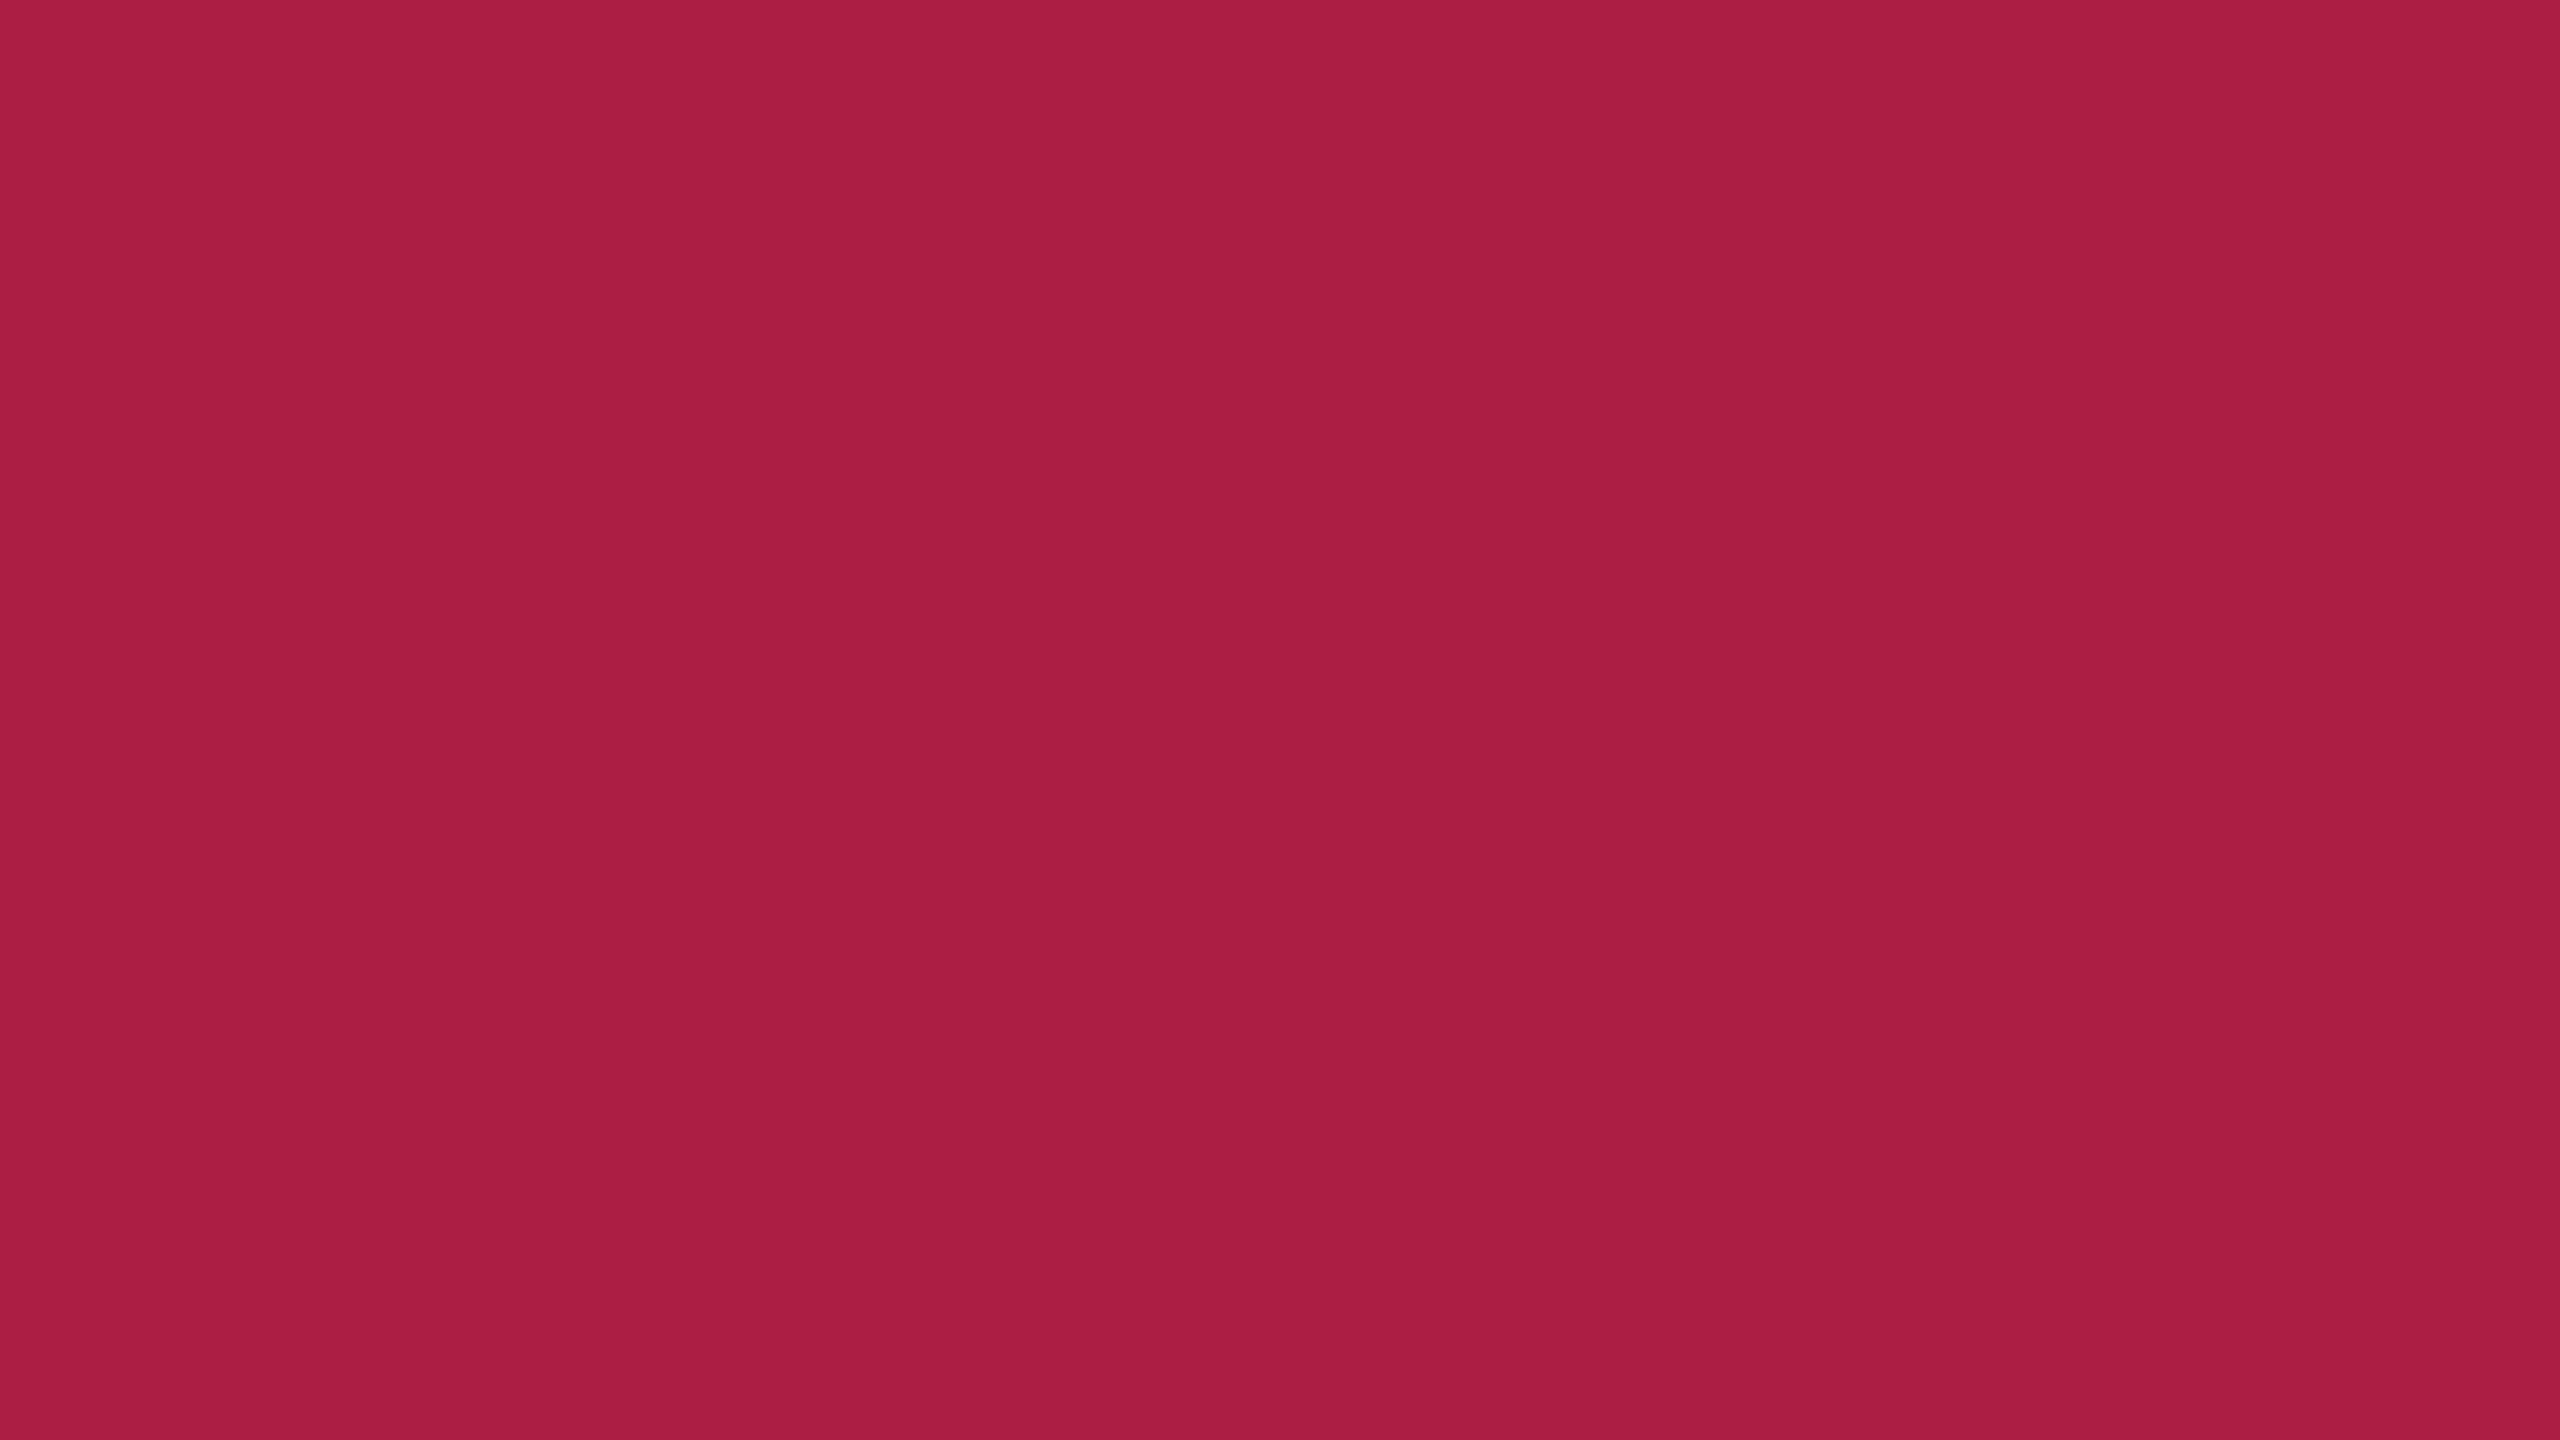 Pantone Color Of The Year 2014 wallpapers HD   451668 2560x1440